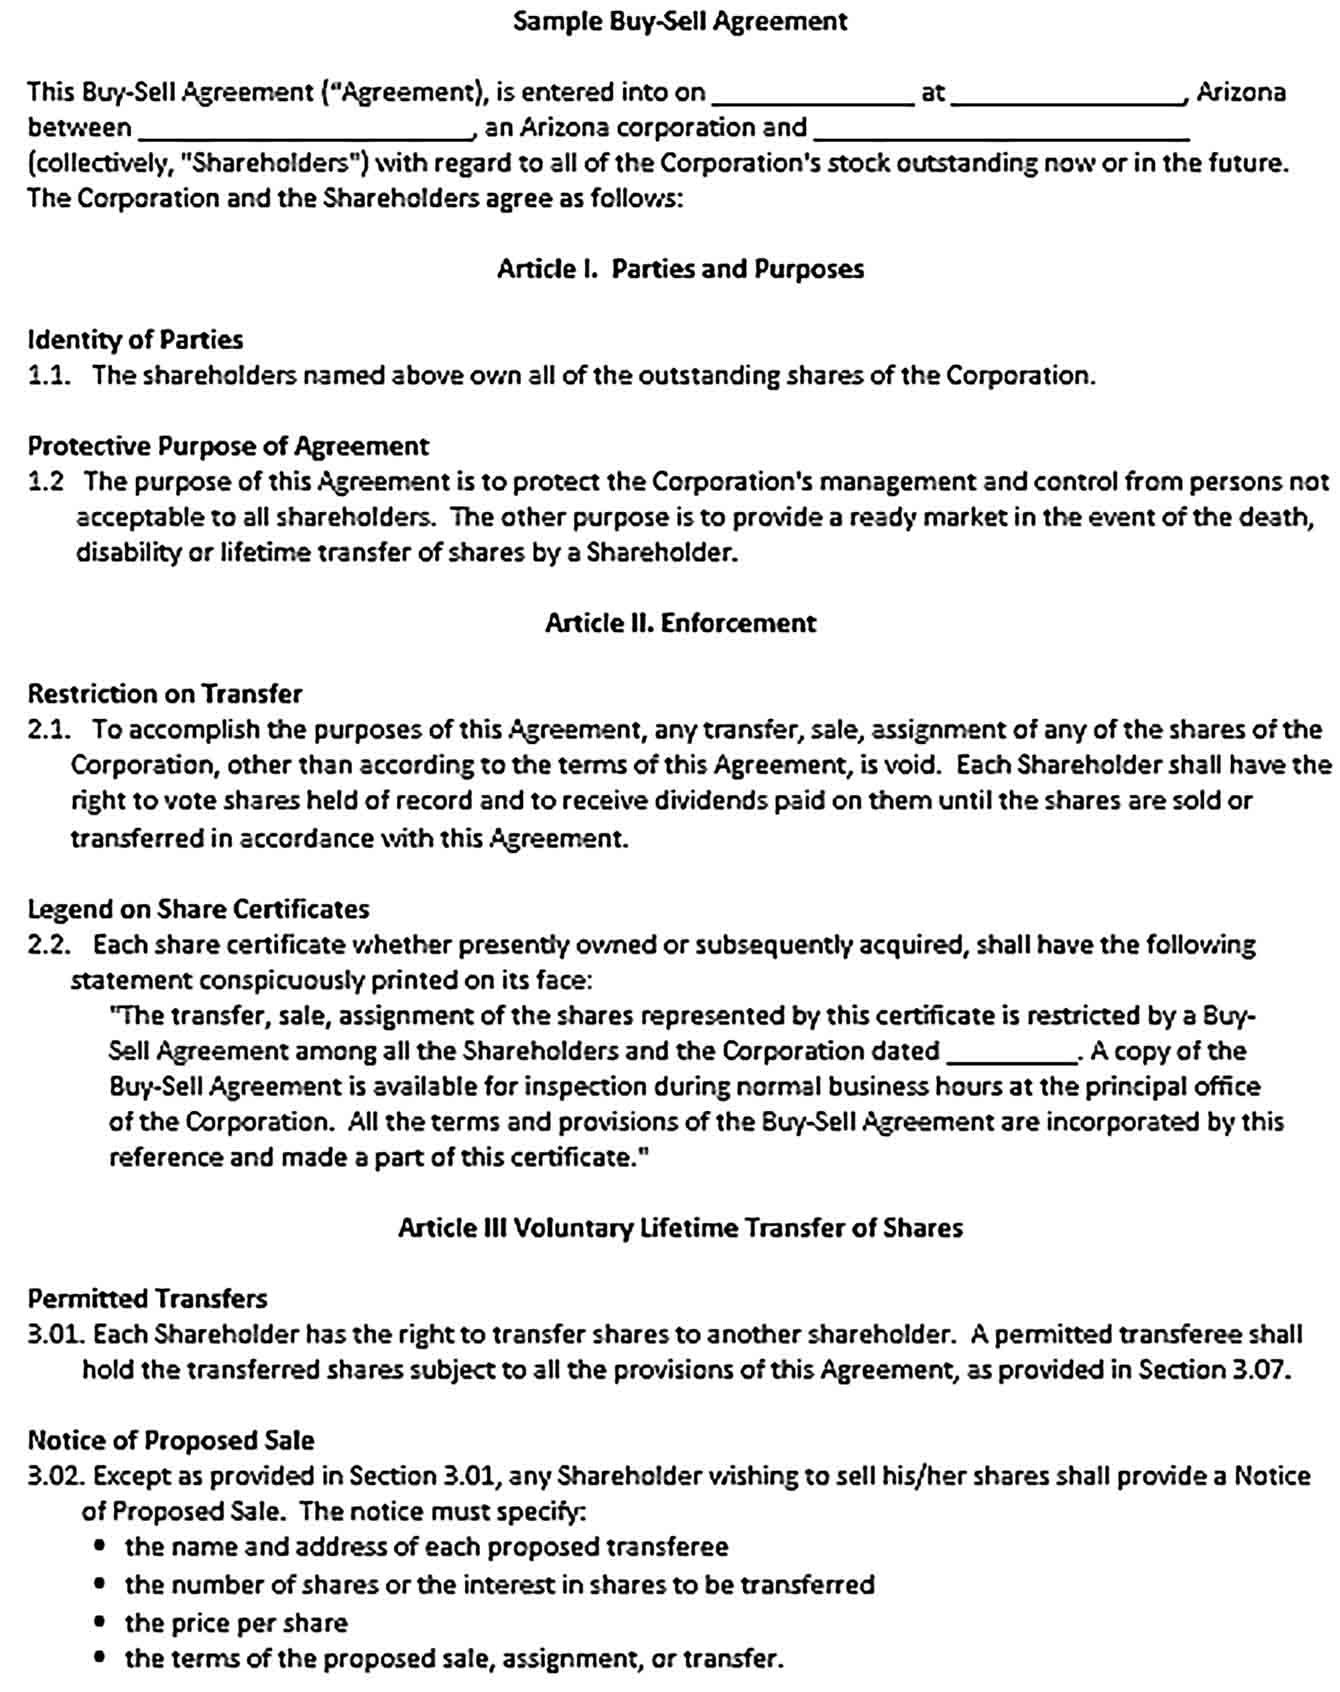 Waiver Example Free Printable Documents Field Trip Permission Slip Field Trip Cover Letter Sample